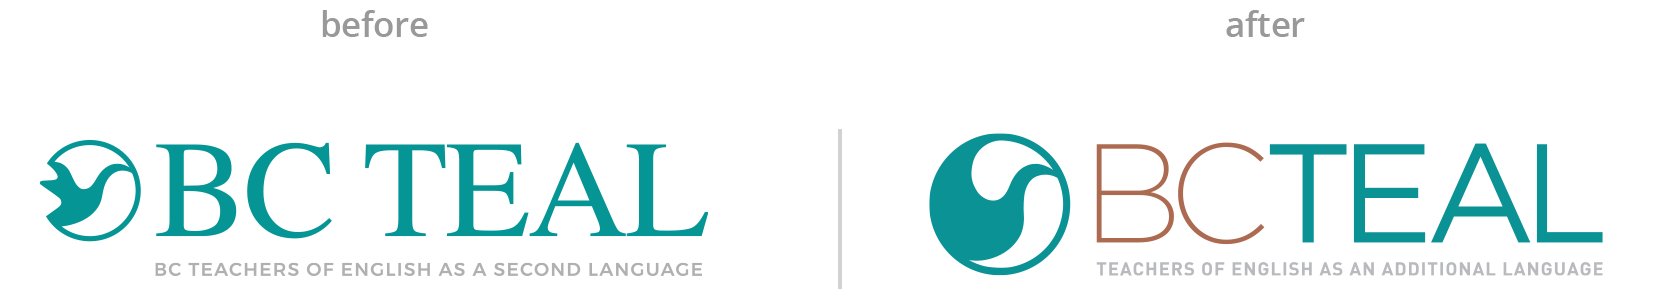 BC TEAL logo before & after image